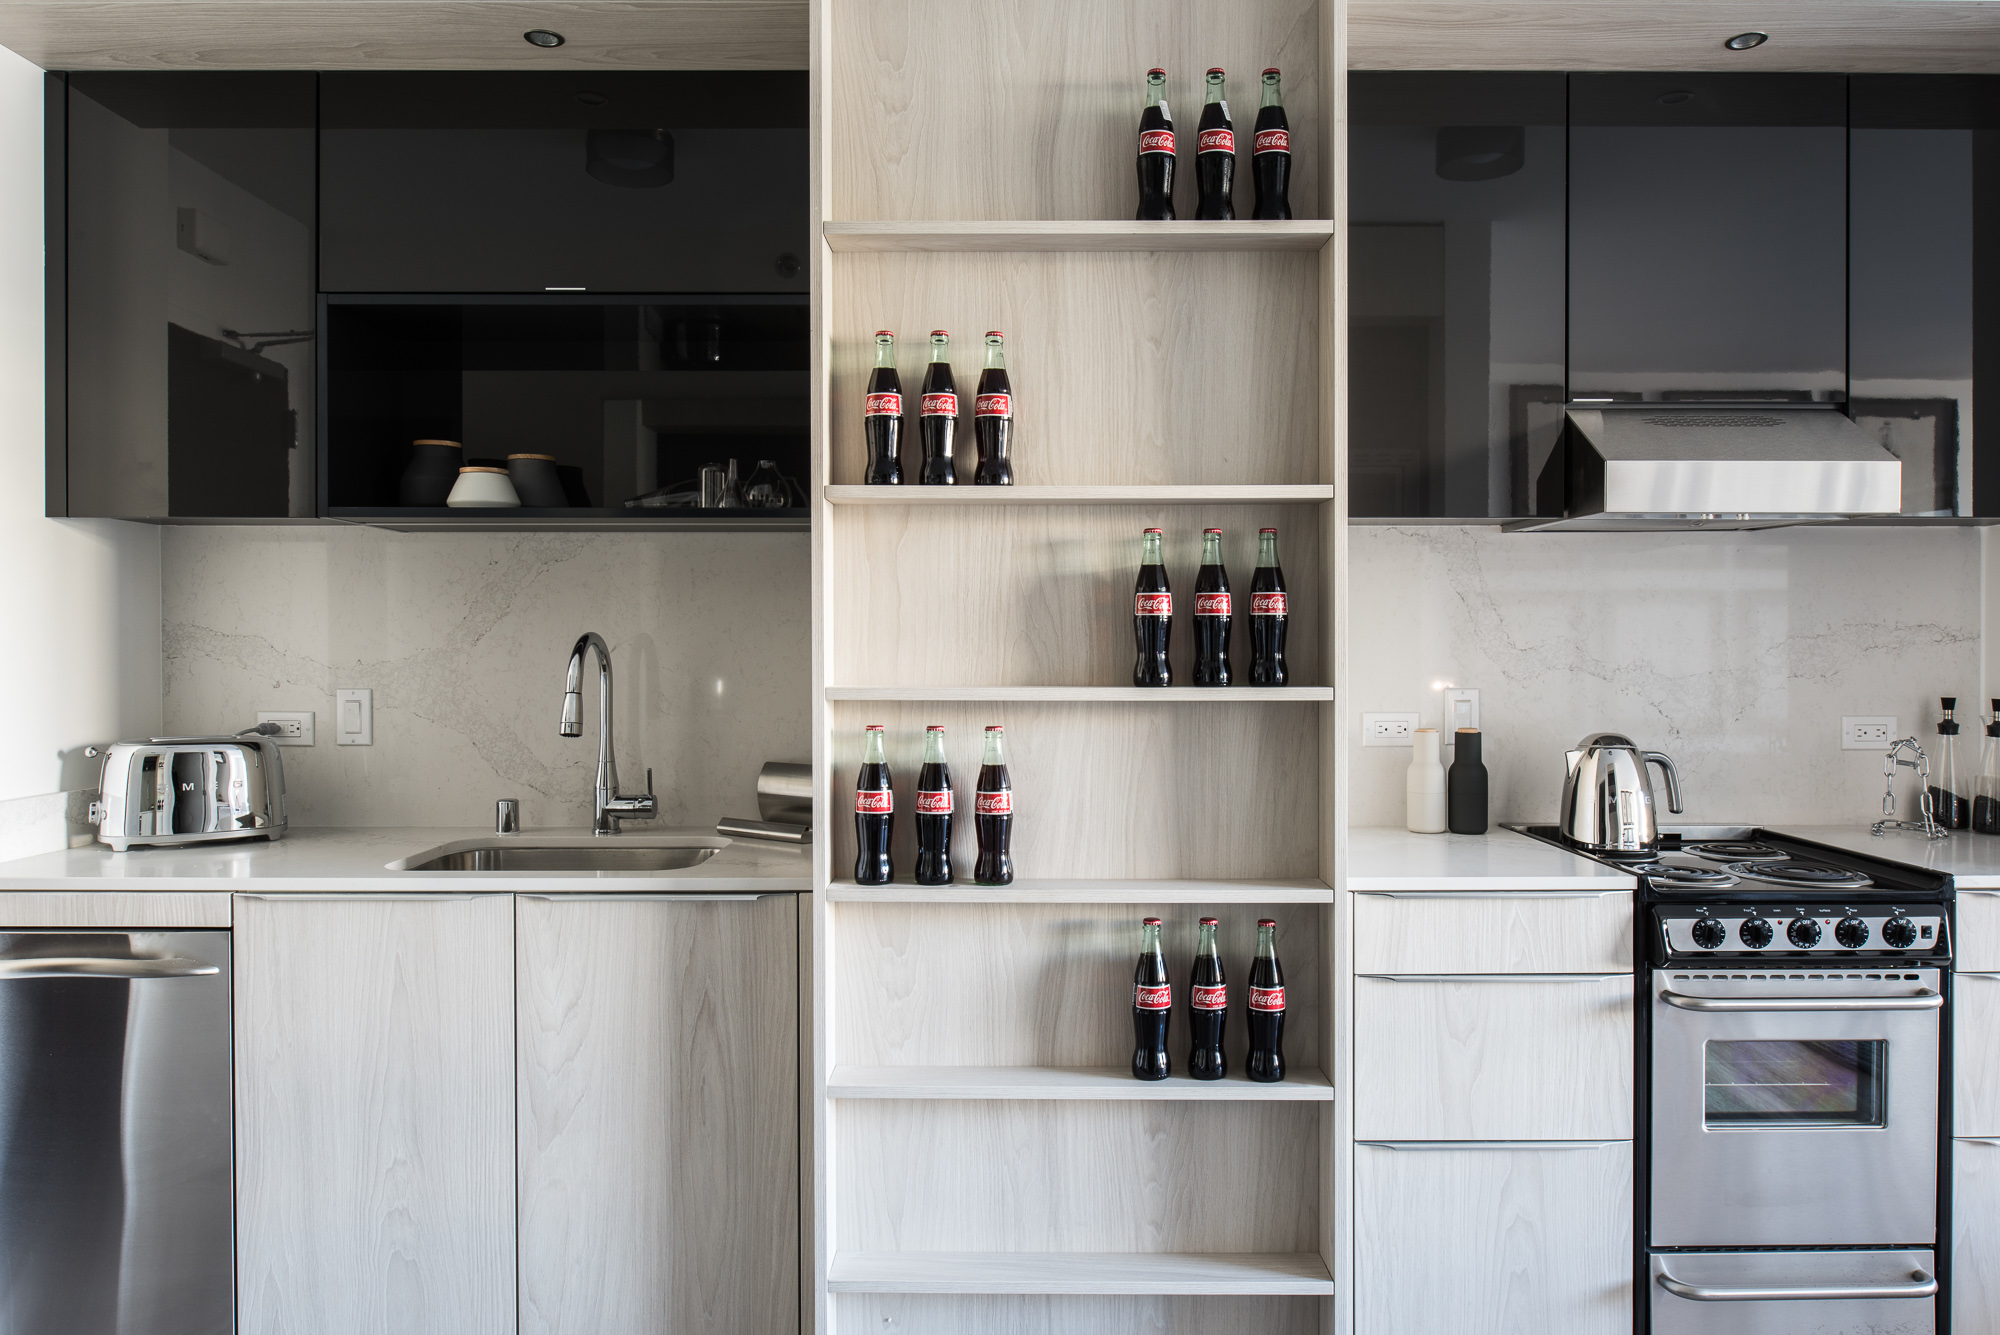 Trinity San Francisco kitchen detail of coke bottles on light wood shelving with glossy black cabinets above